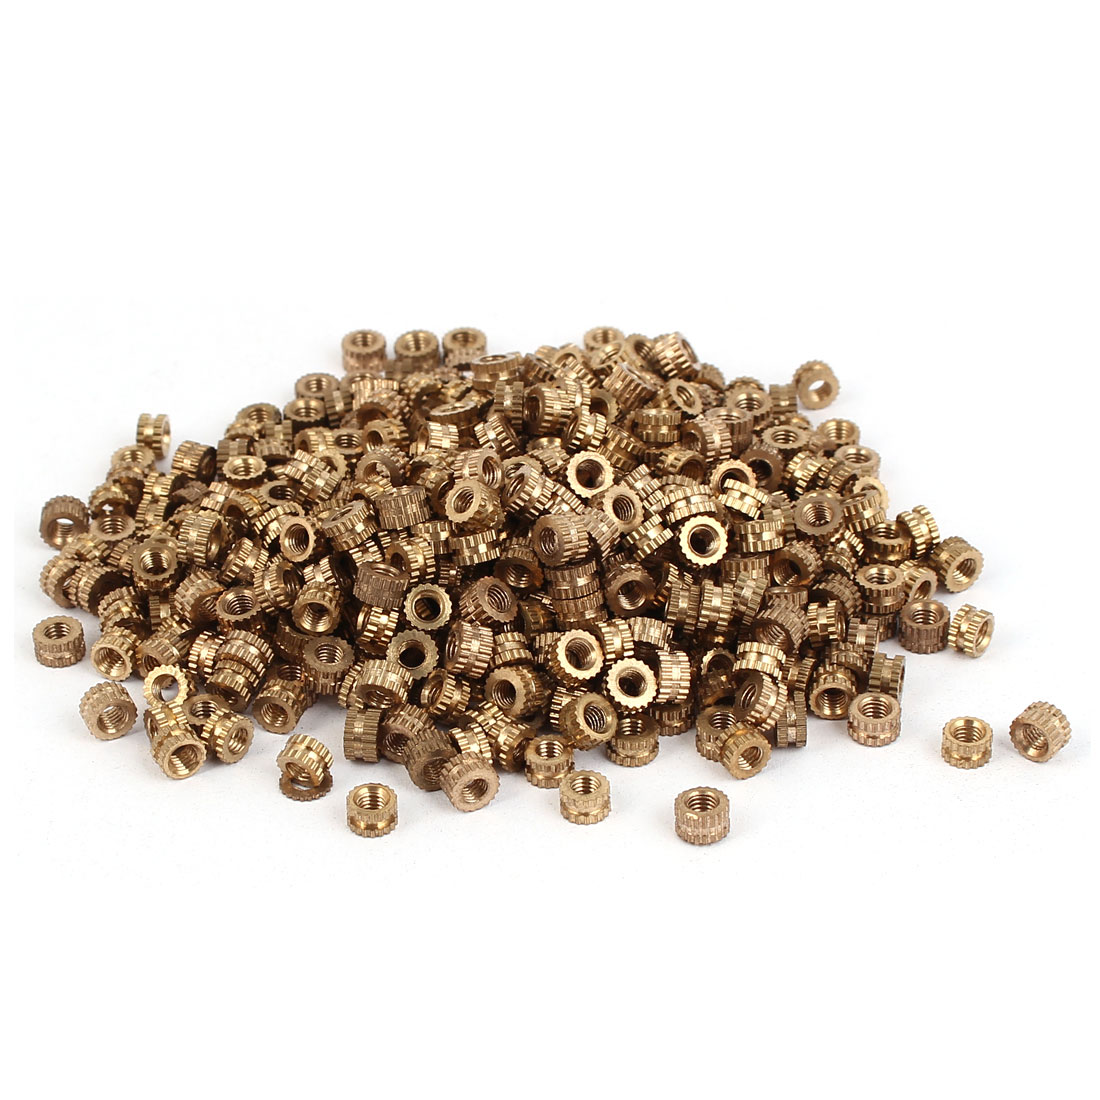 M3 x 3mm Female Thread Brass Knurled Threaded Round Insert Embedded Nuts 500PCS